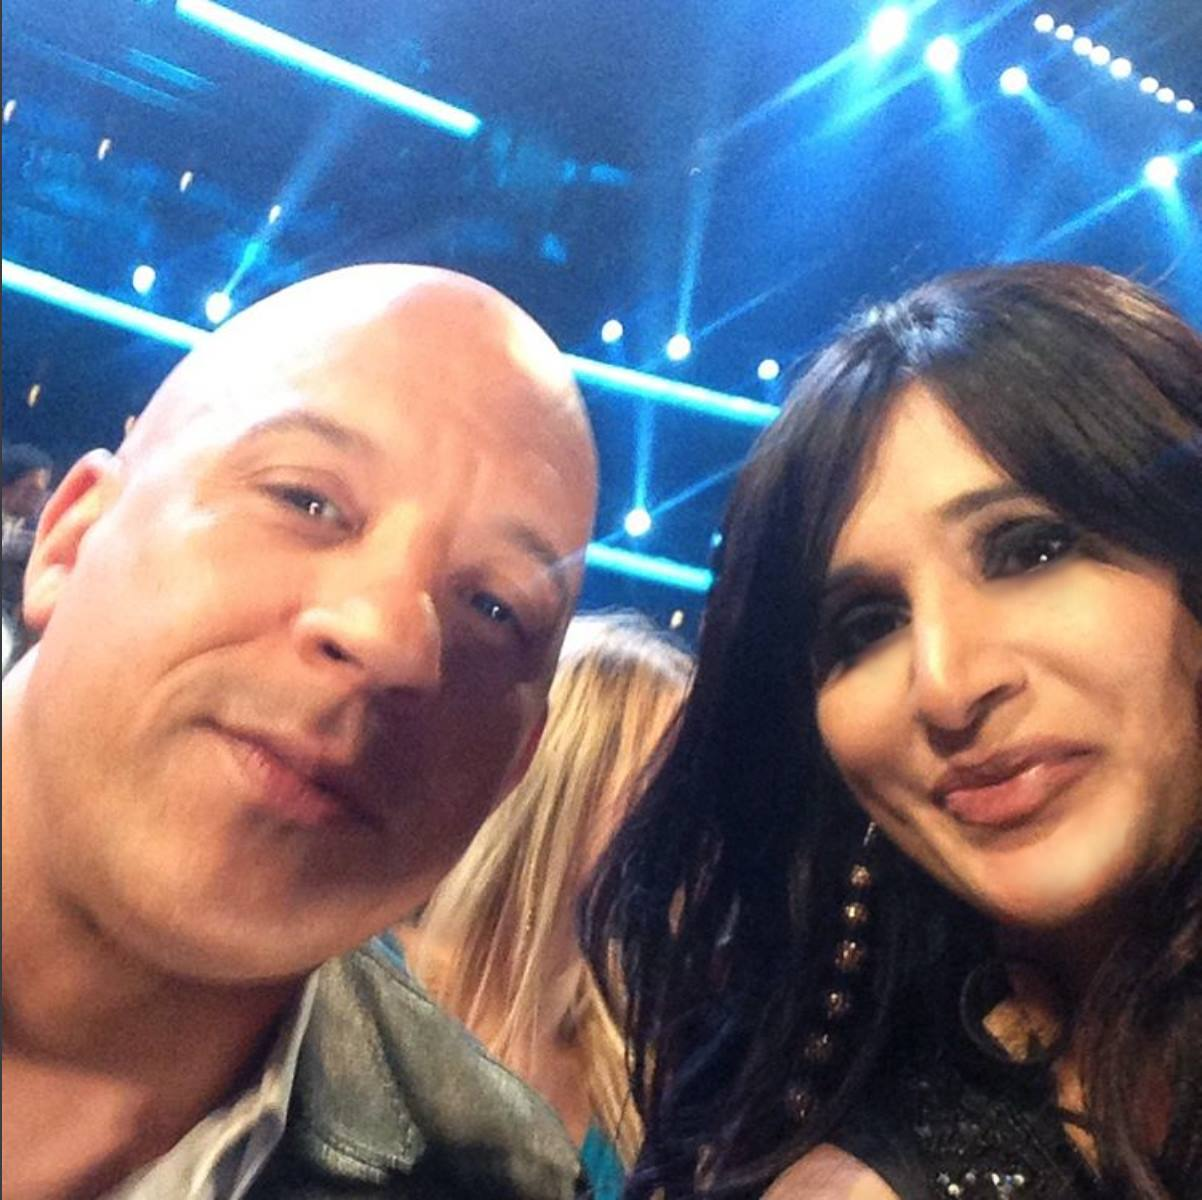 shahida-parides-peoples-choice-awards-with-vin-diesel